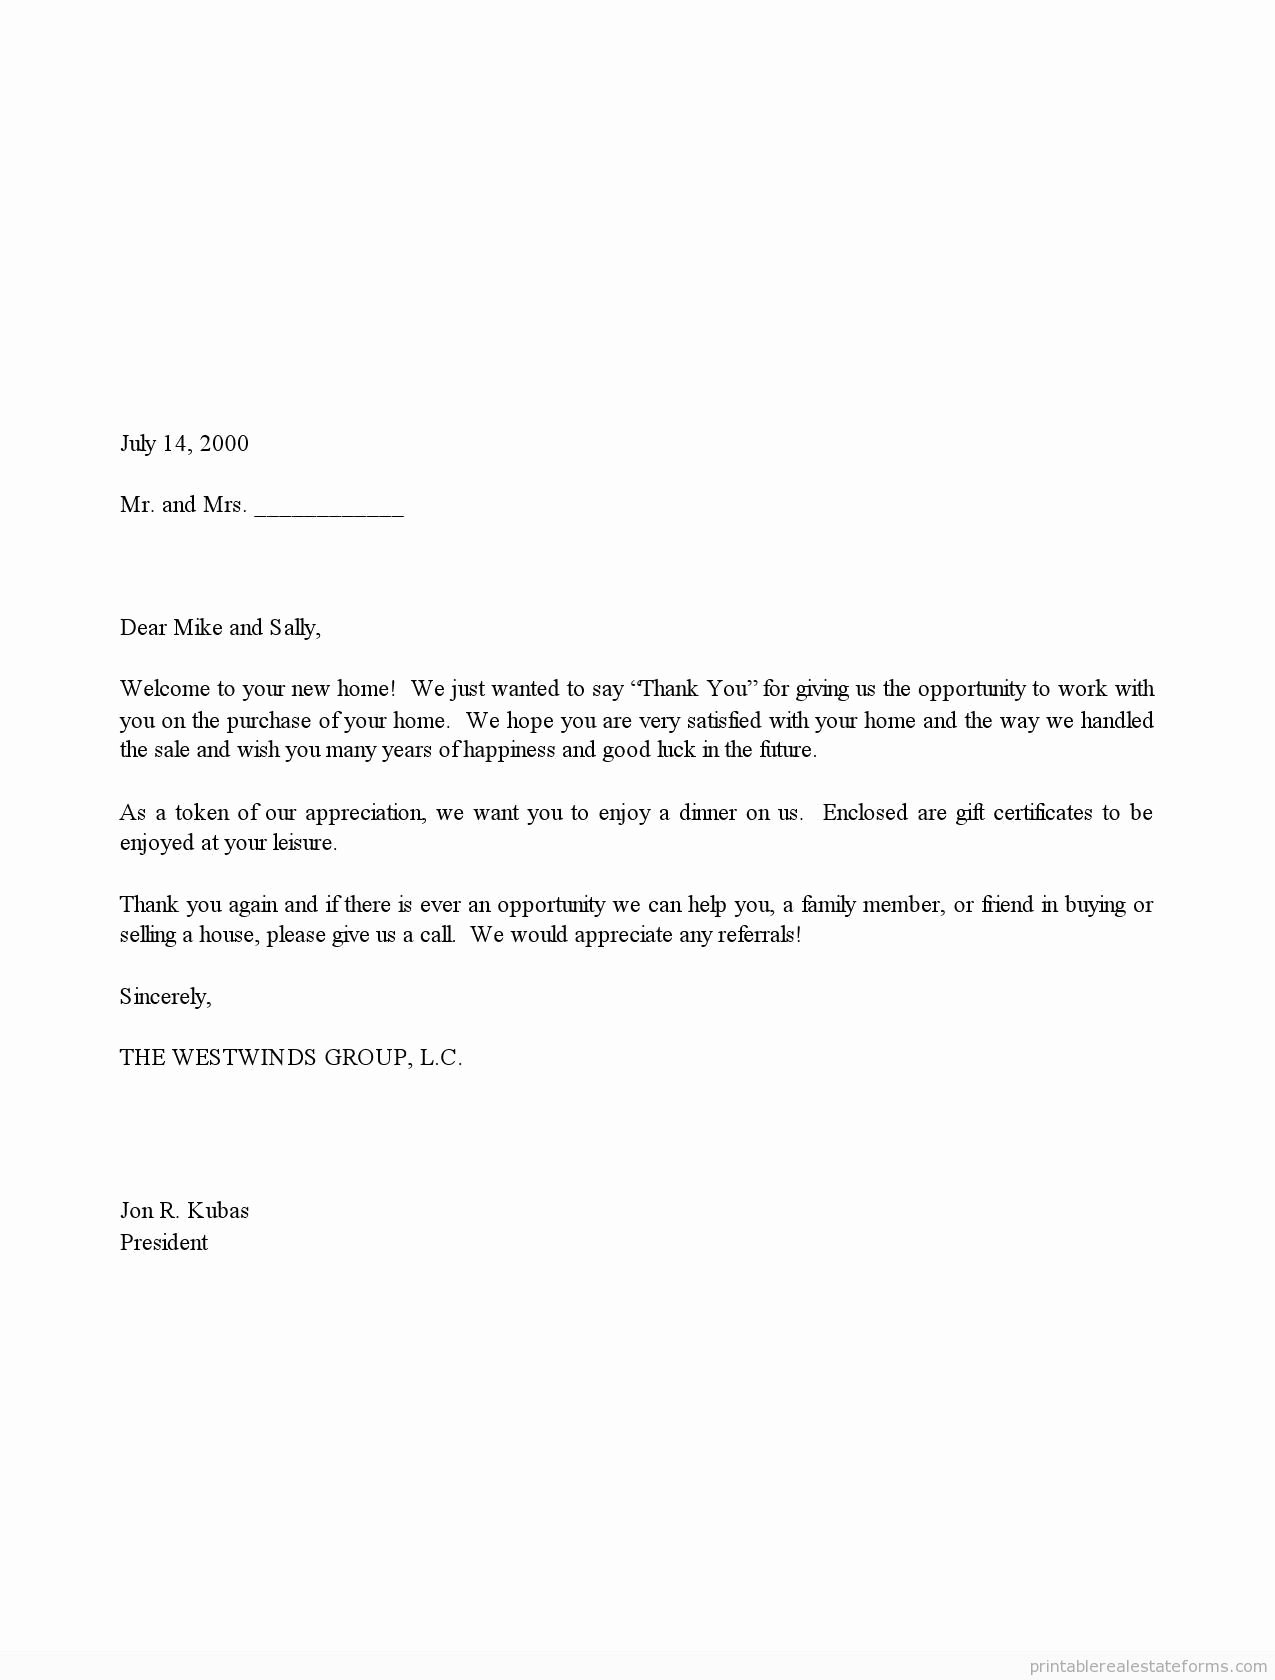 Gift Letter Template Word Elegant T Letter Sample Template Design Certificate Word with